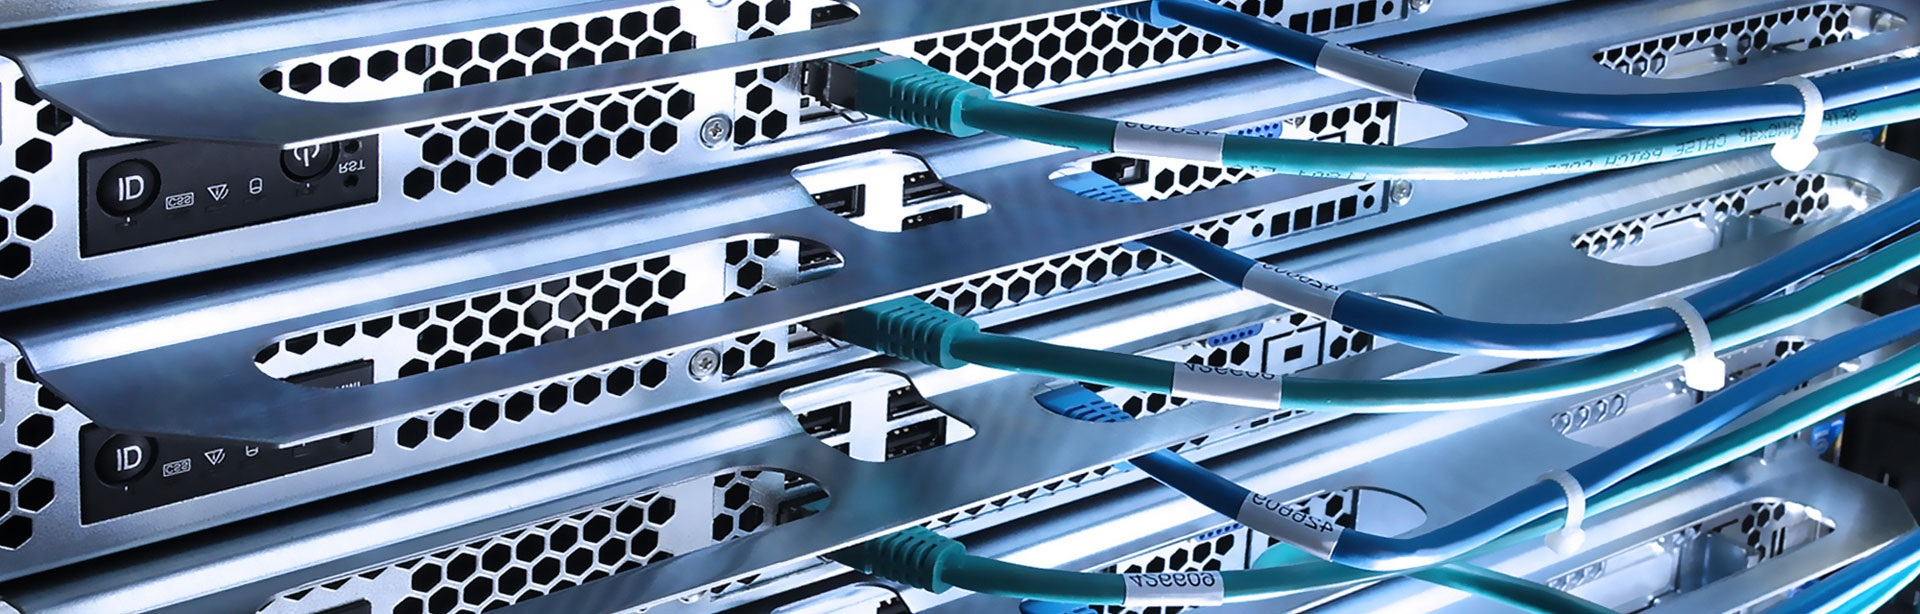 New Iberia Louisiana Superior Voice & Data Network Cabling Contractor